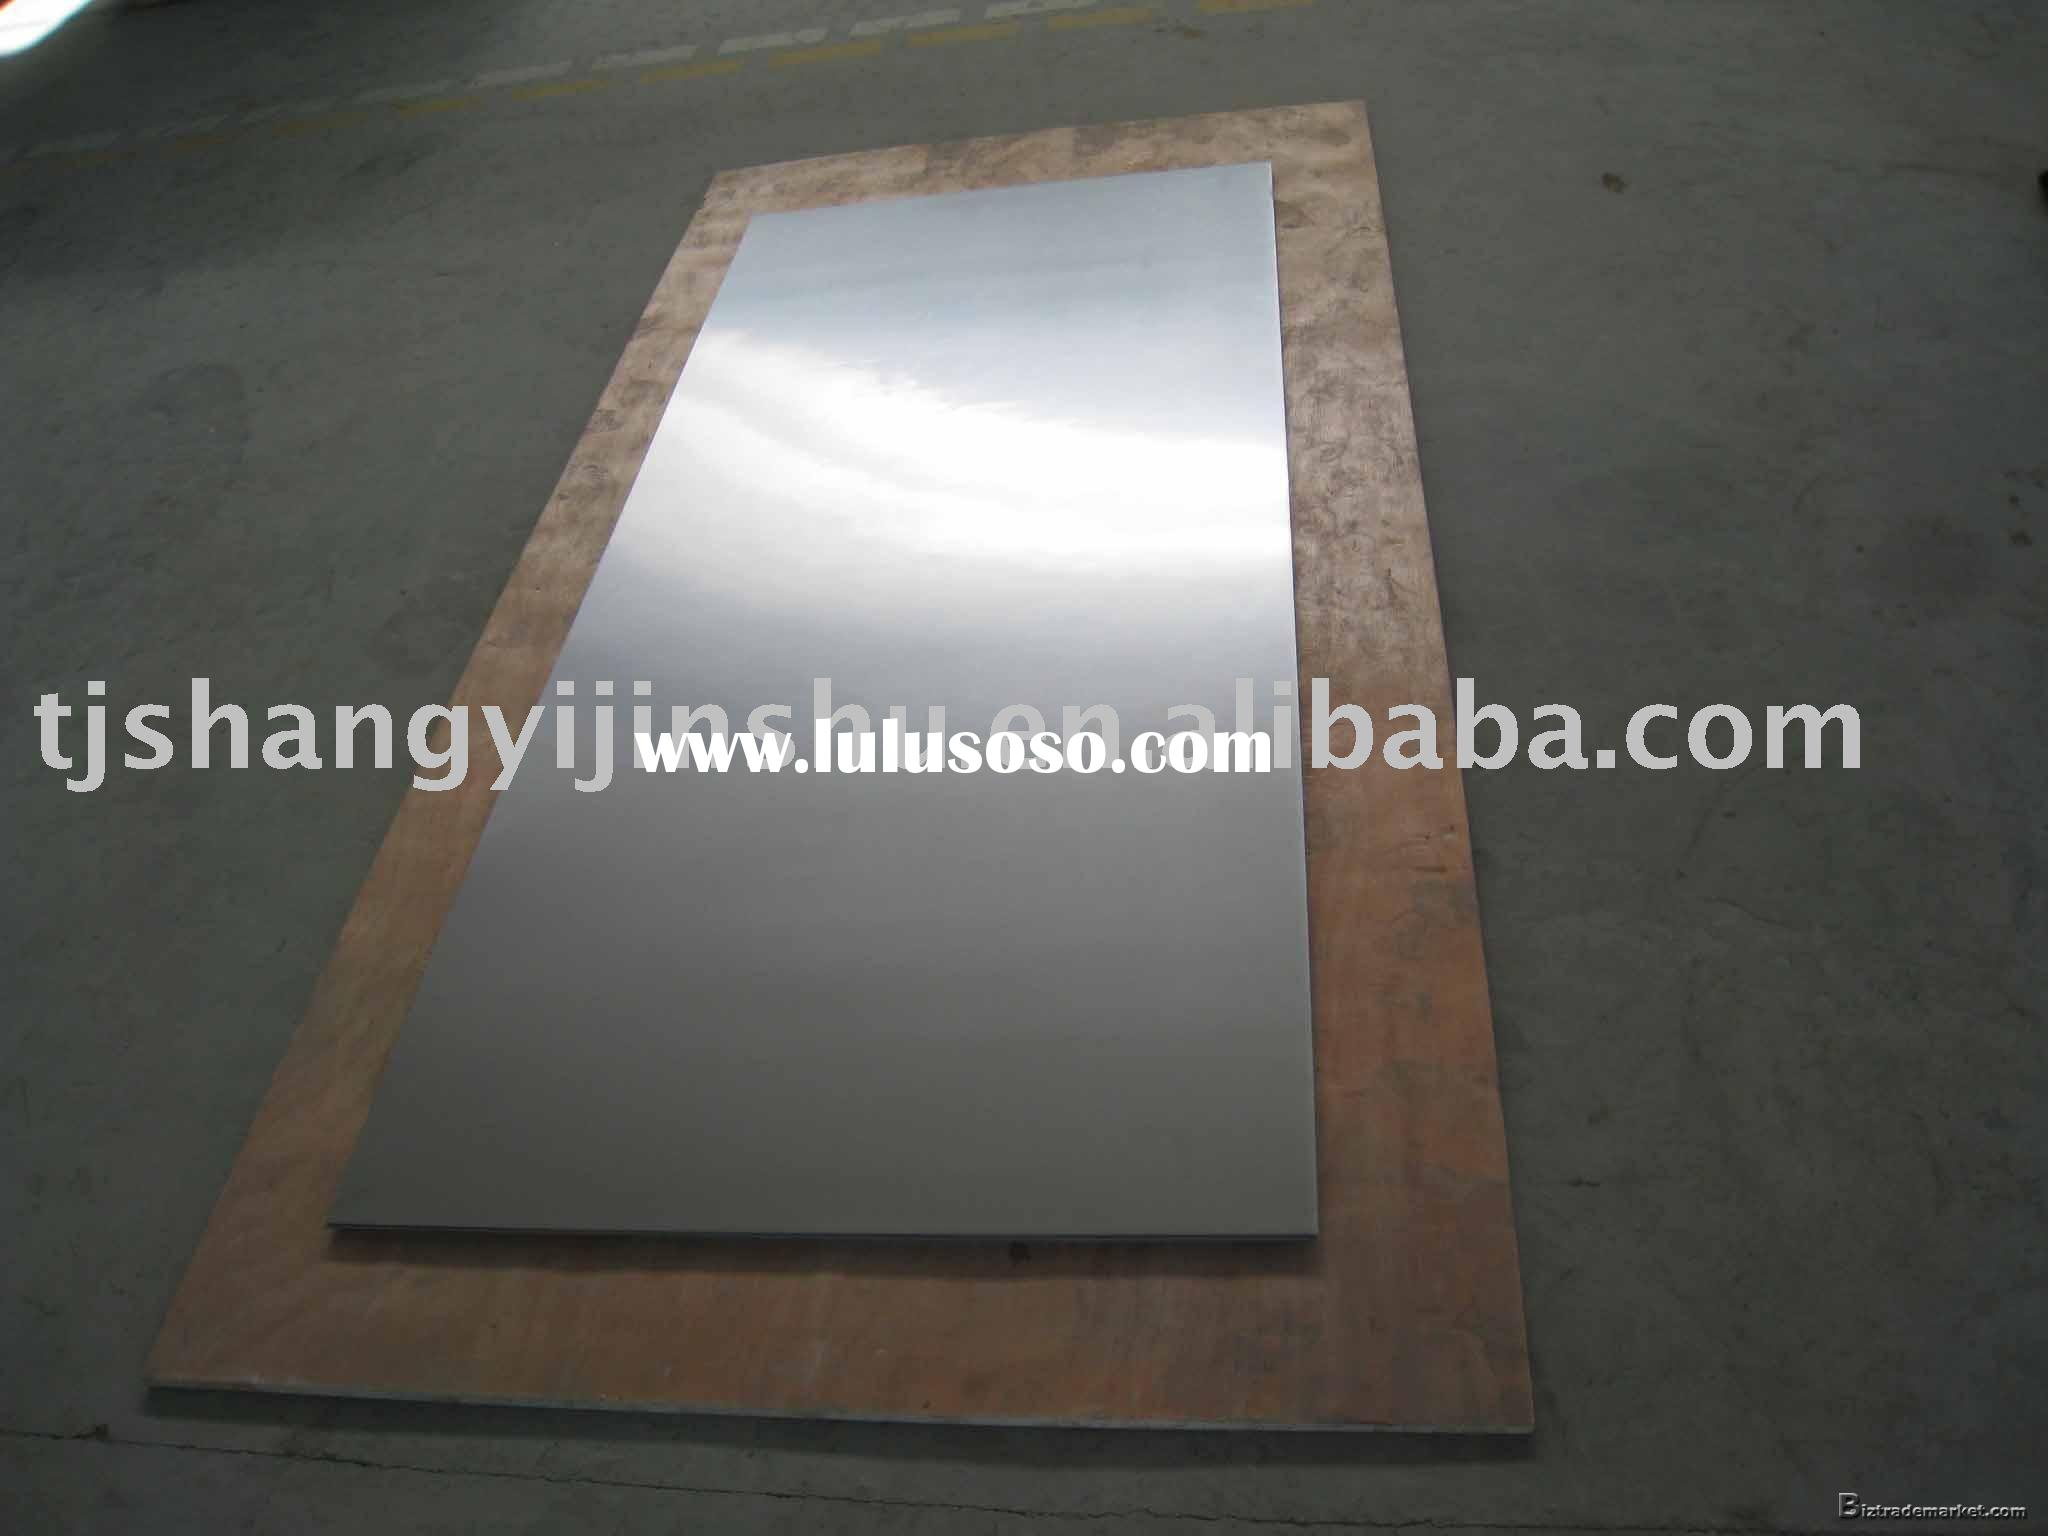 Galvanized Steel Sheet/Galvanized Steel Plate/Galvanized Plate/Galvanized Sheet/Galvanized Steel/Zin